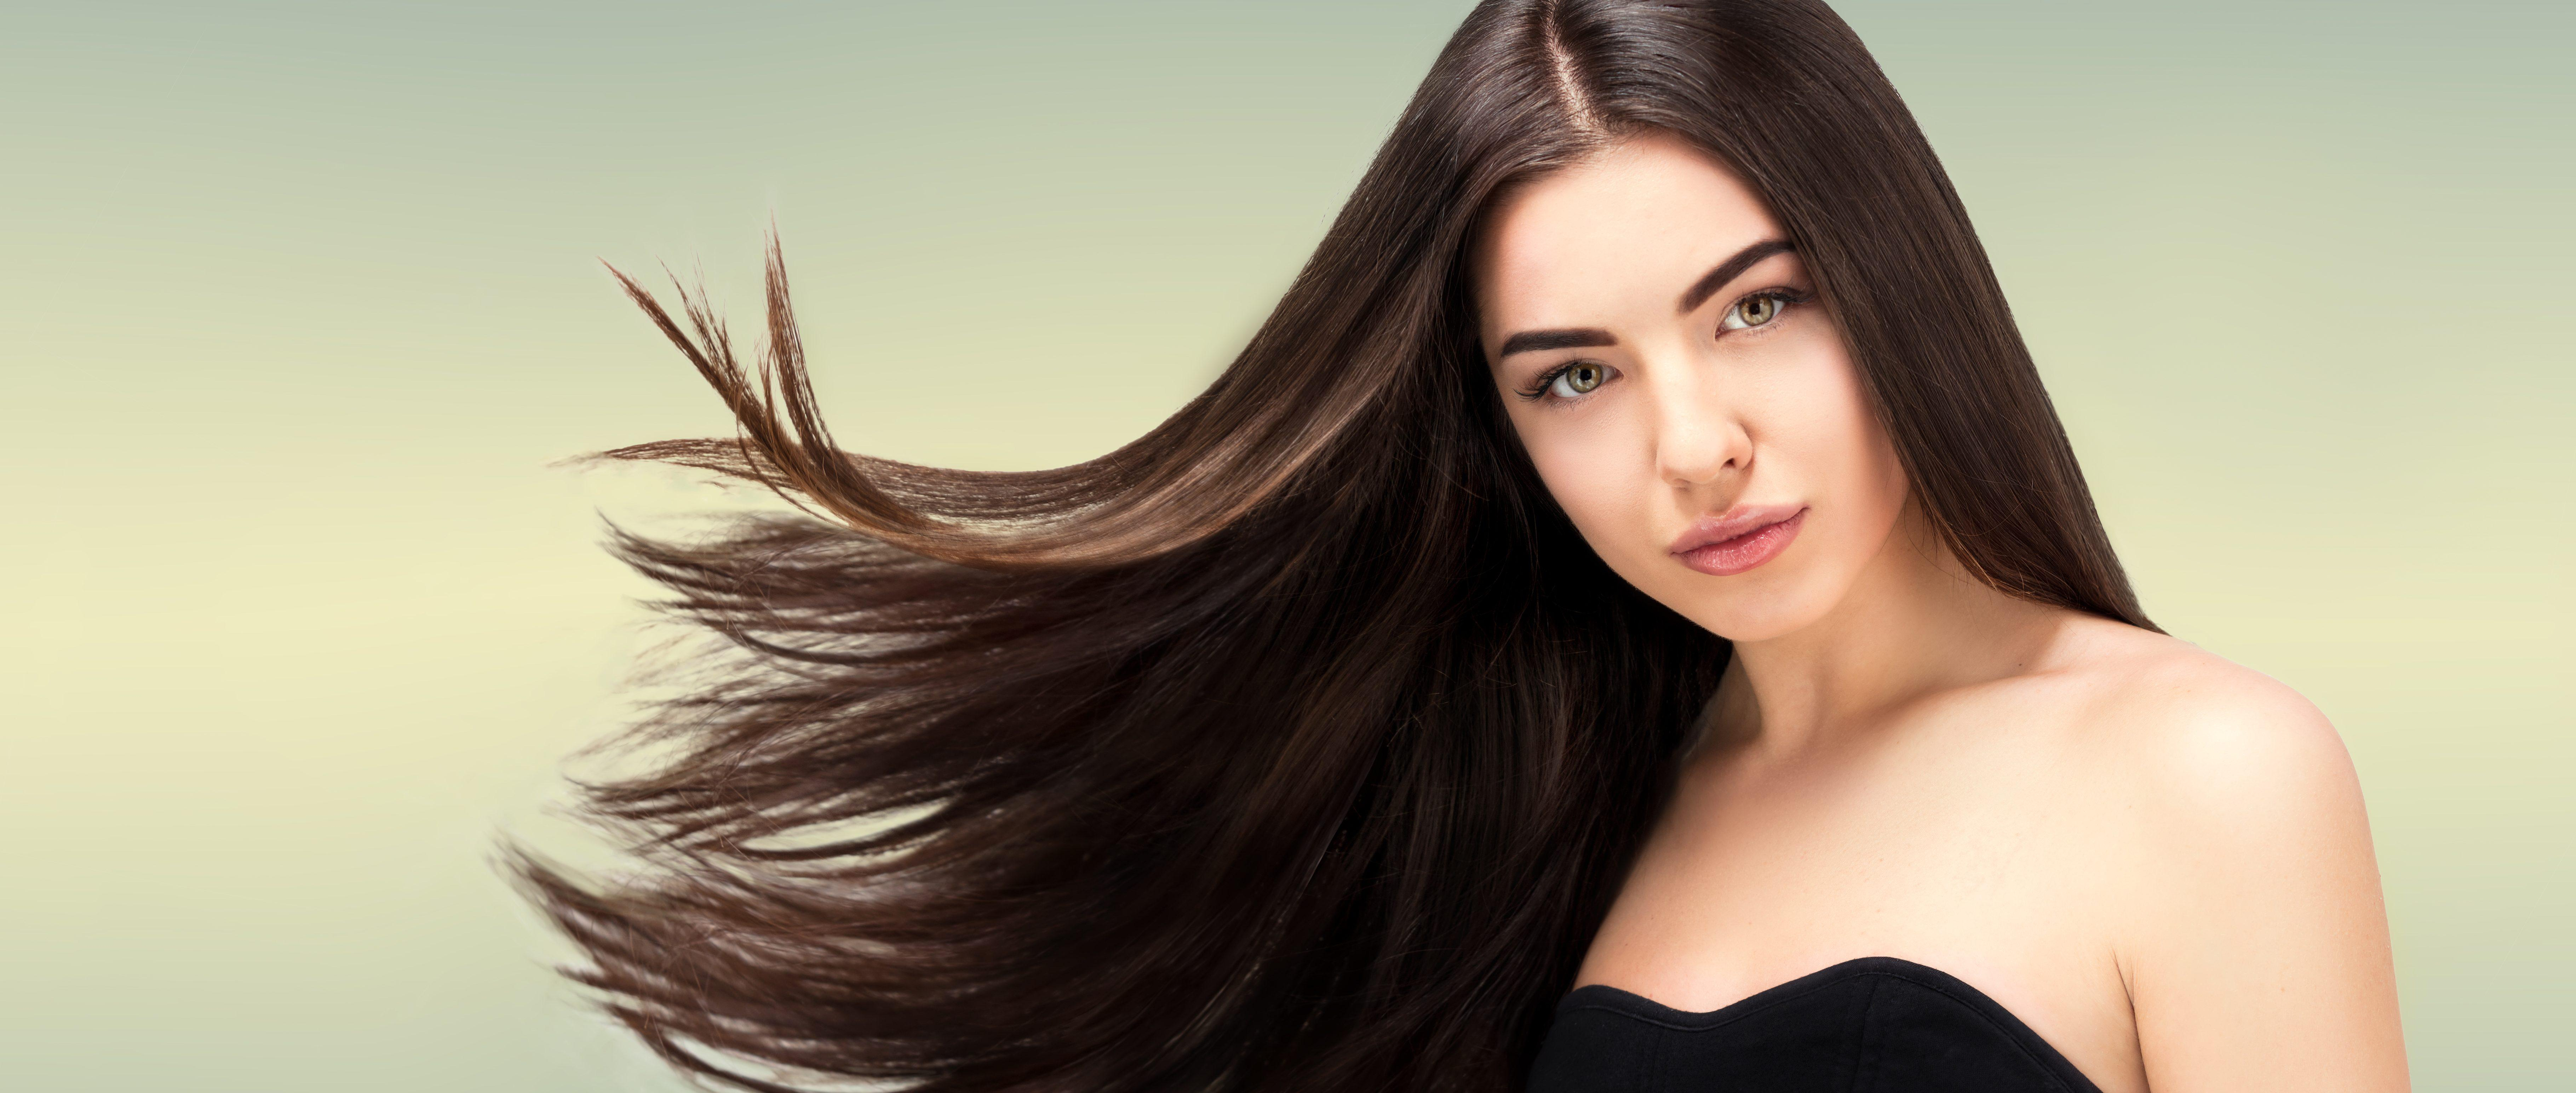 6 Professional Tips: How to Dry Hair Without Damaging It